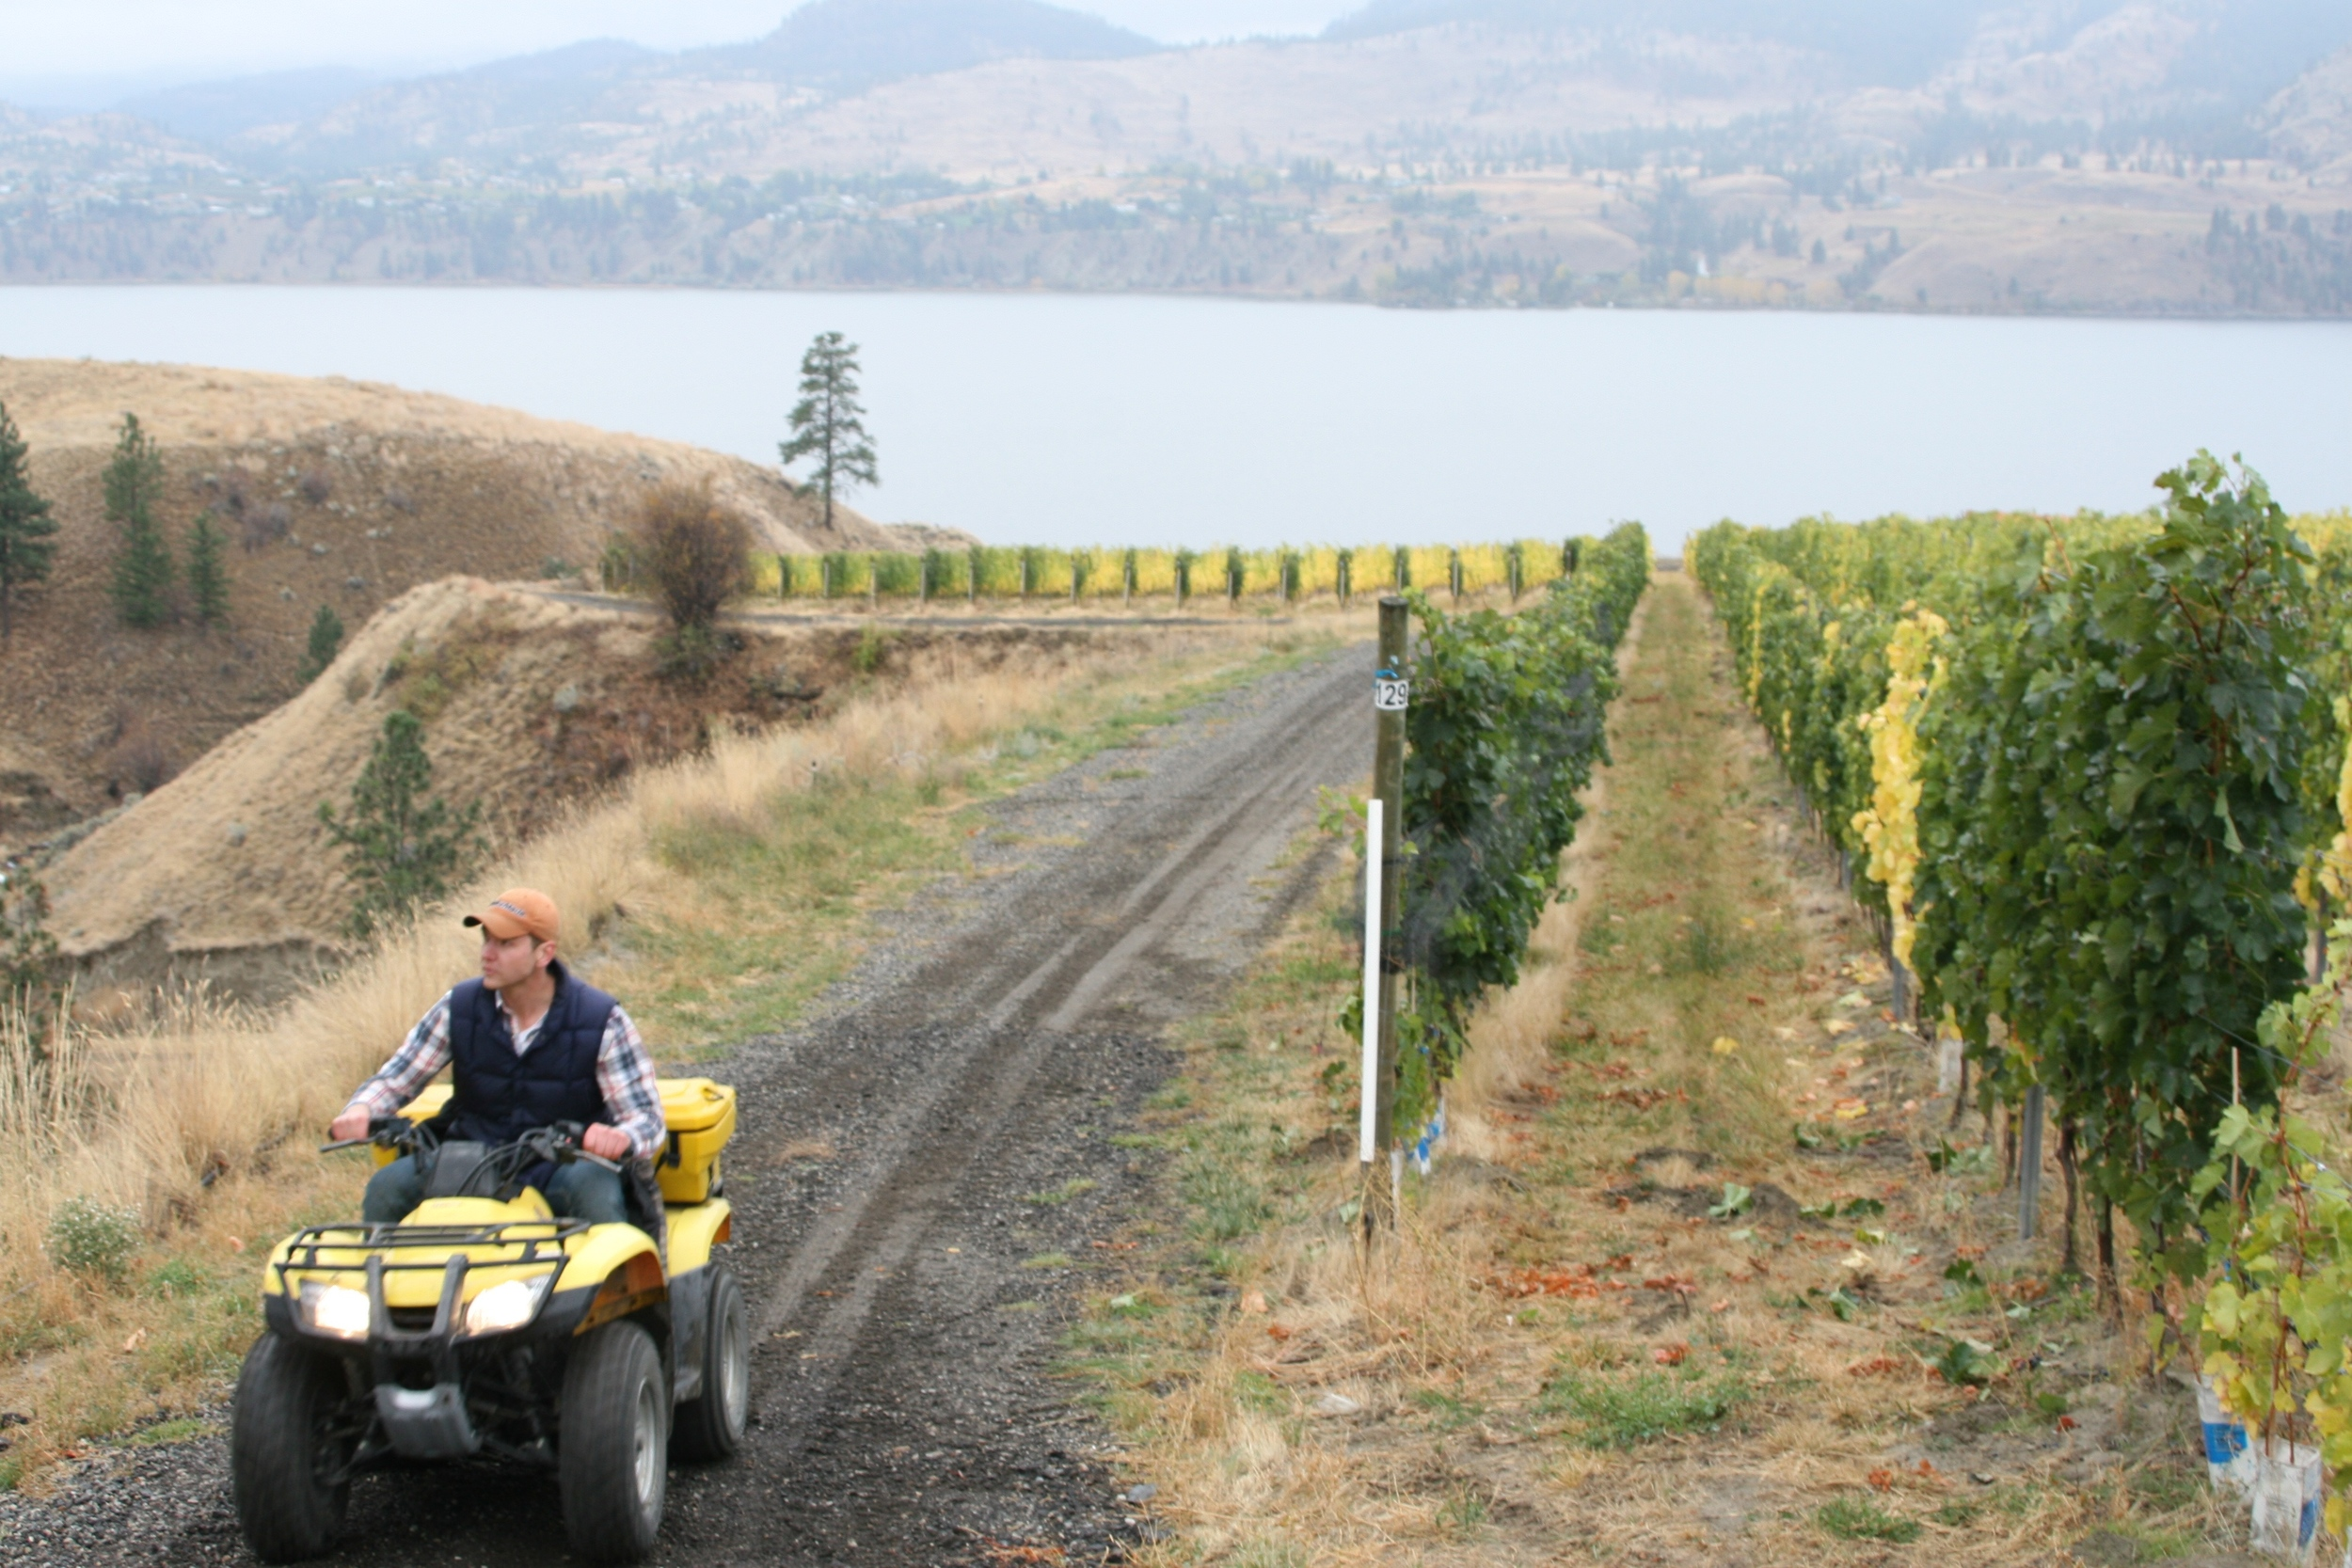 Touring the vineyard on an ATV